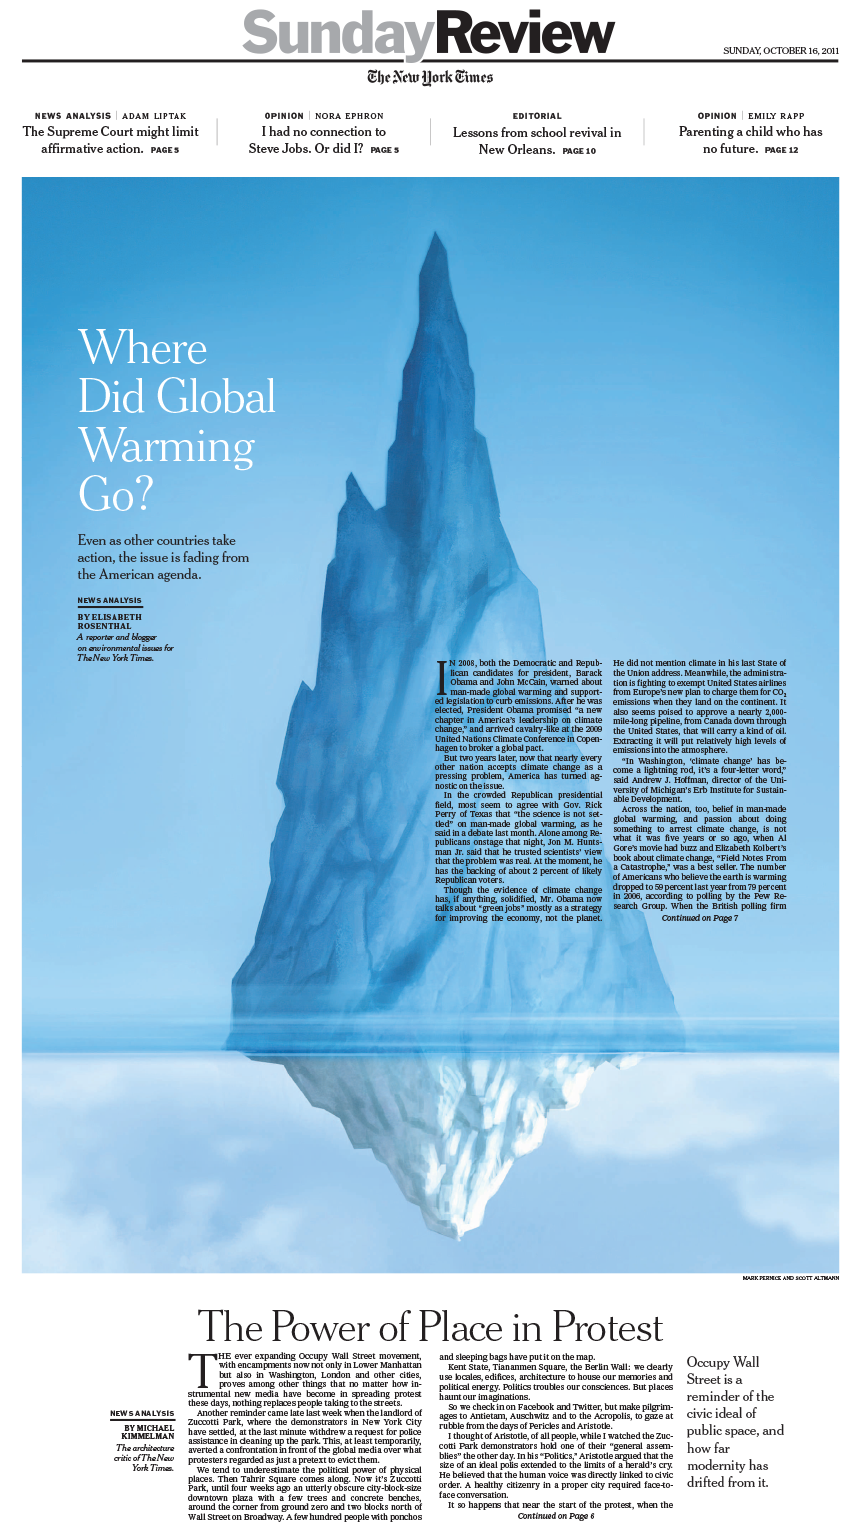 Sunday Review Cover: Where Did Global Warming Go?